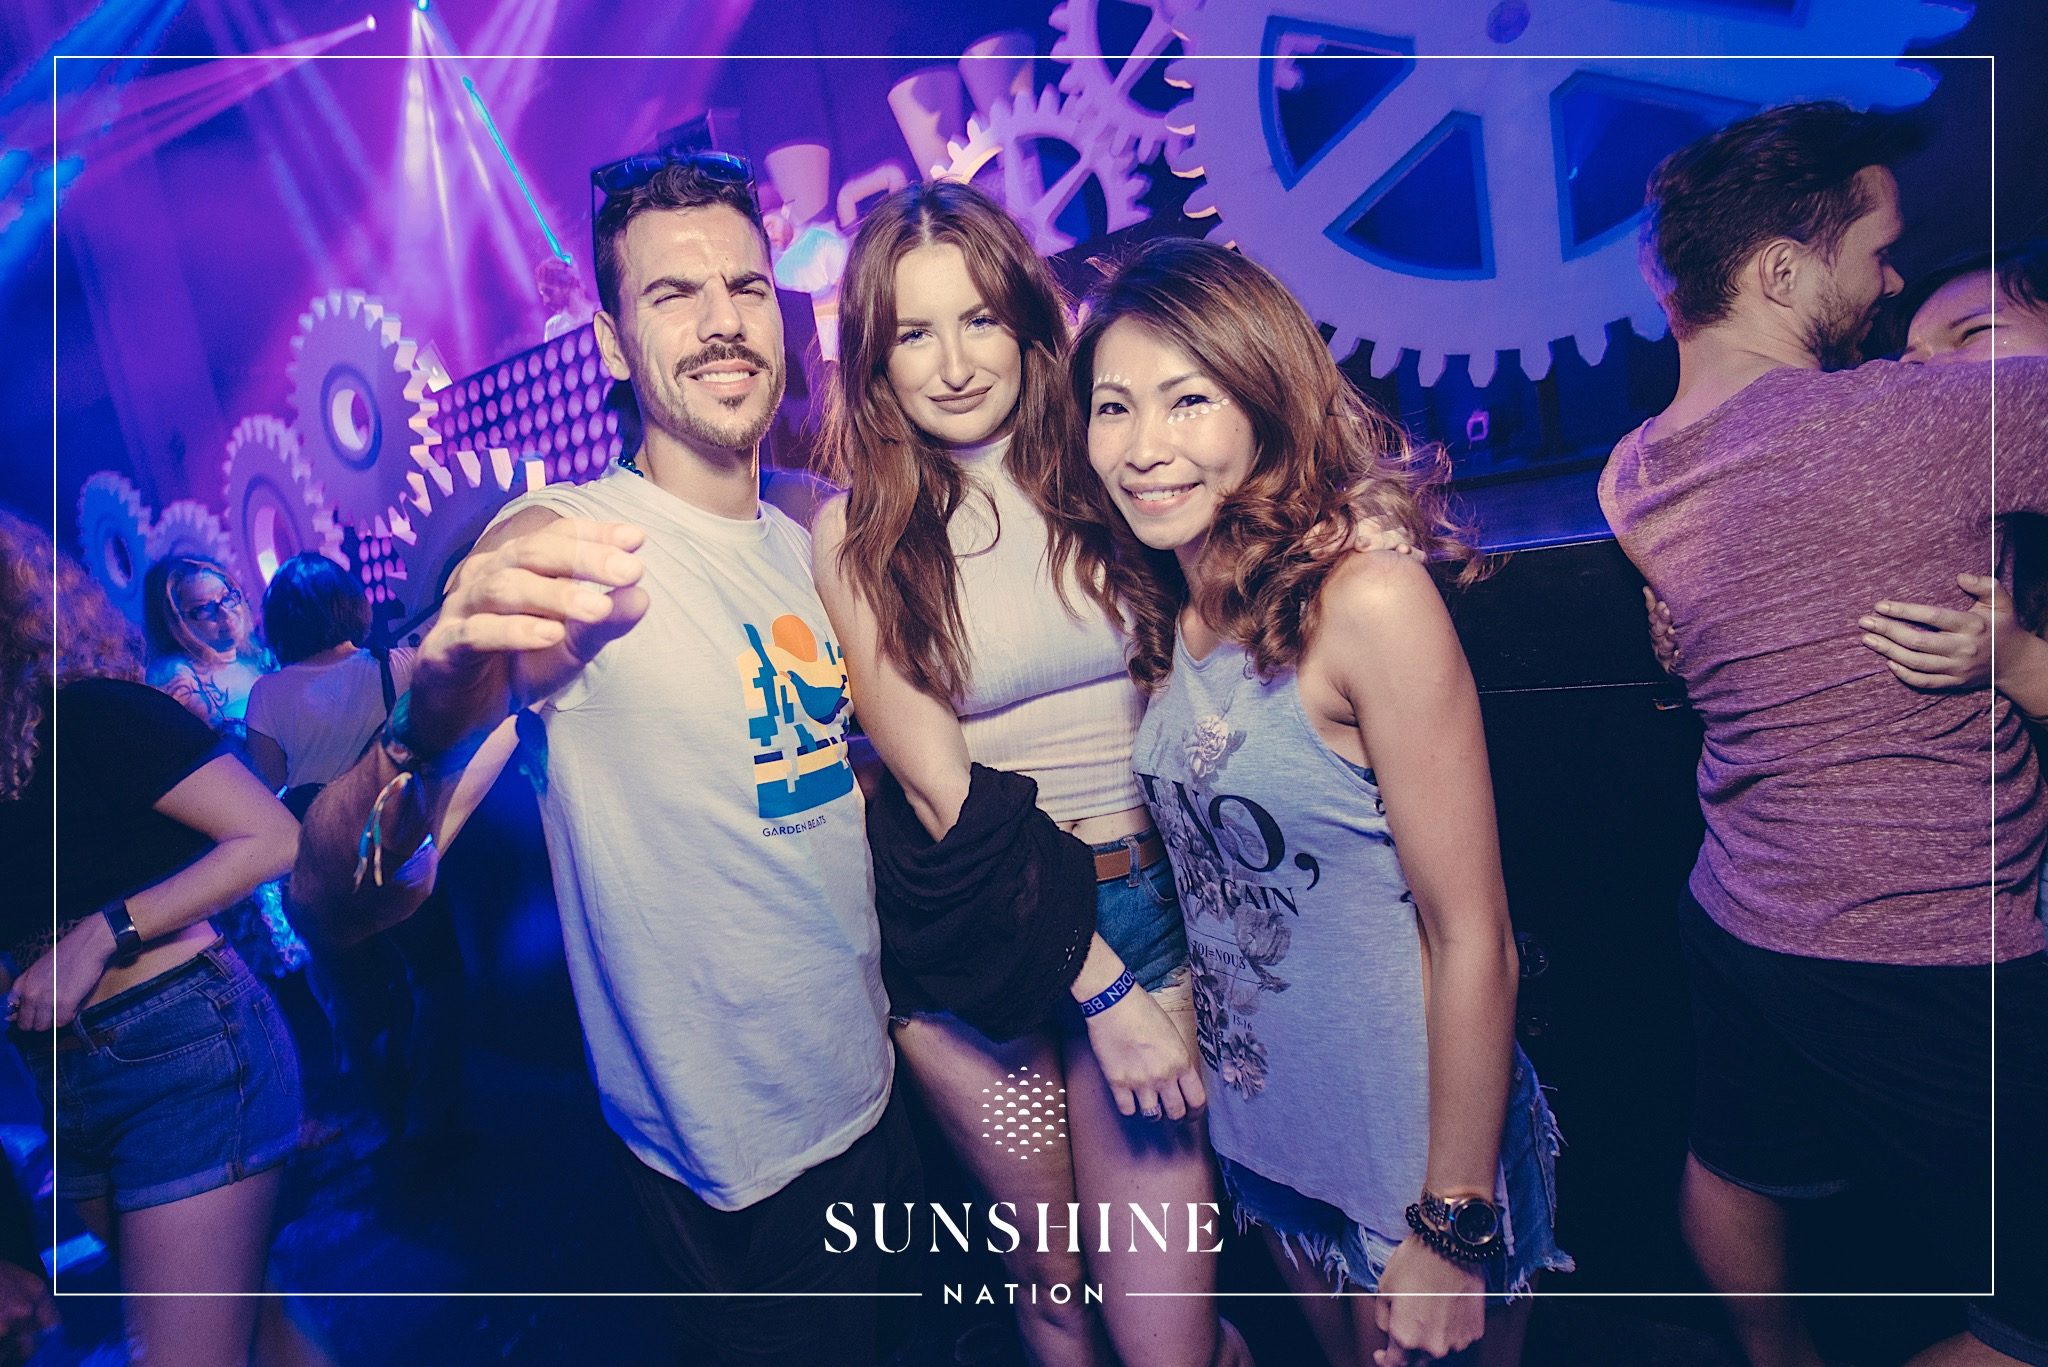 18022017_SunshineNation_Colossal031_Watermarked.jpg